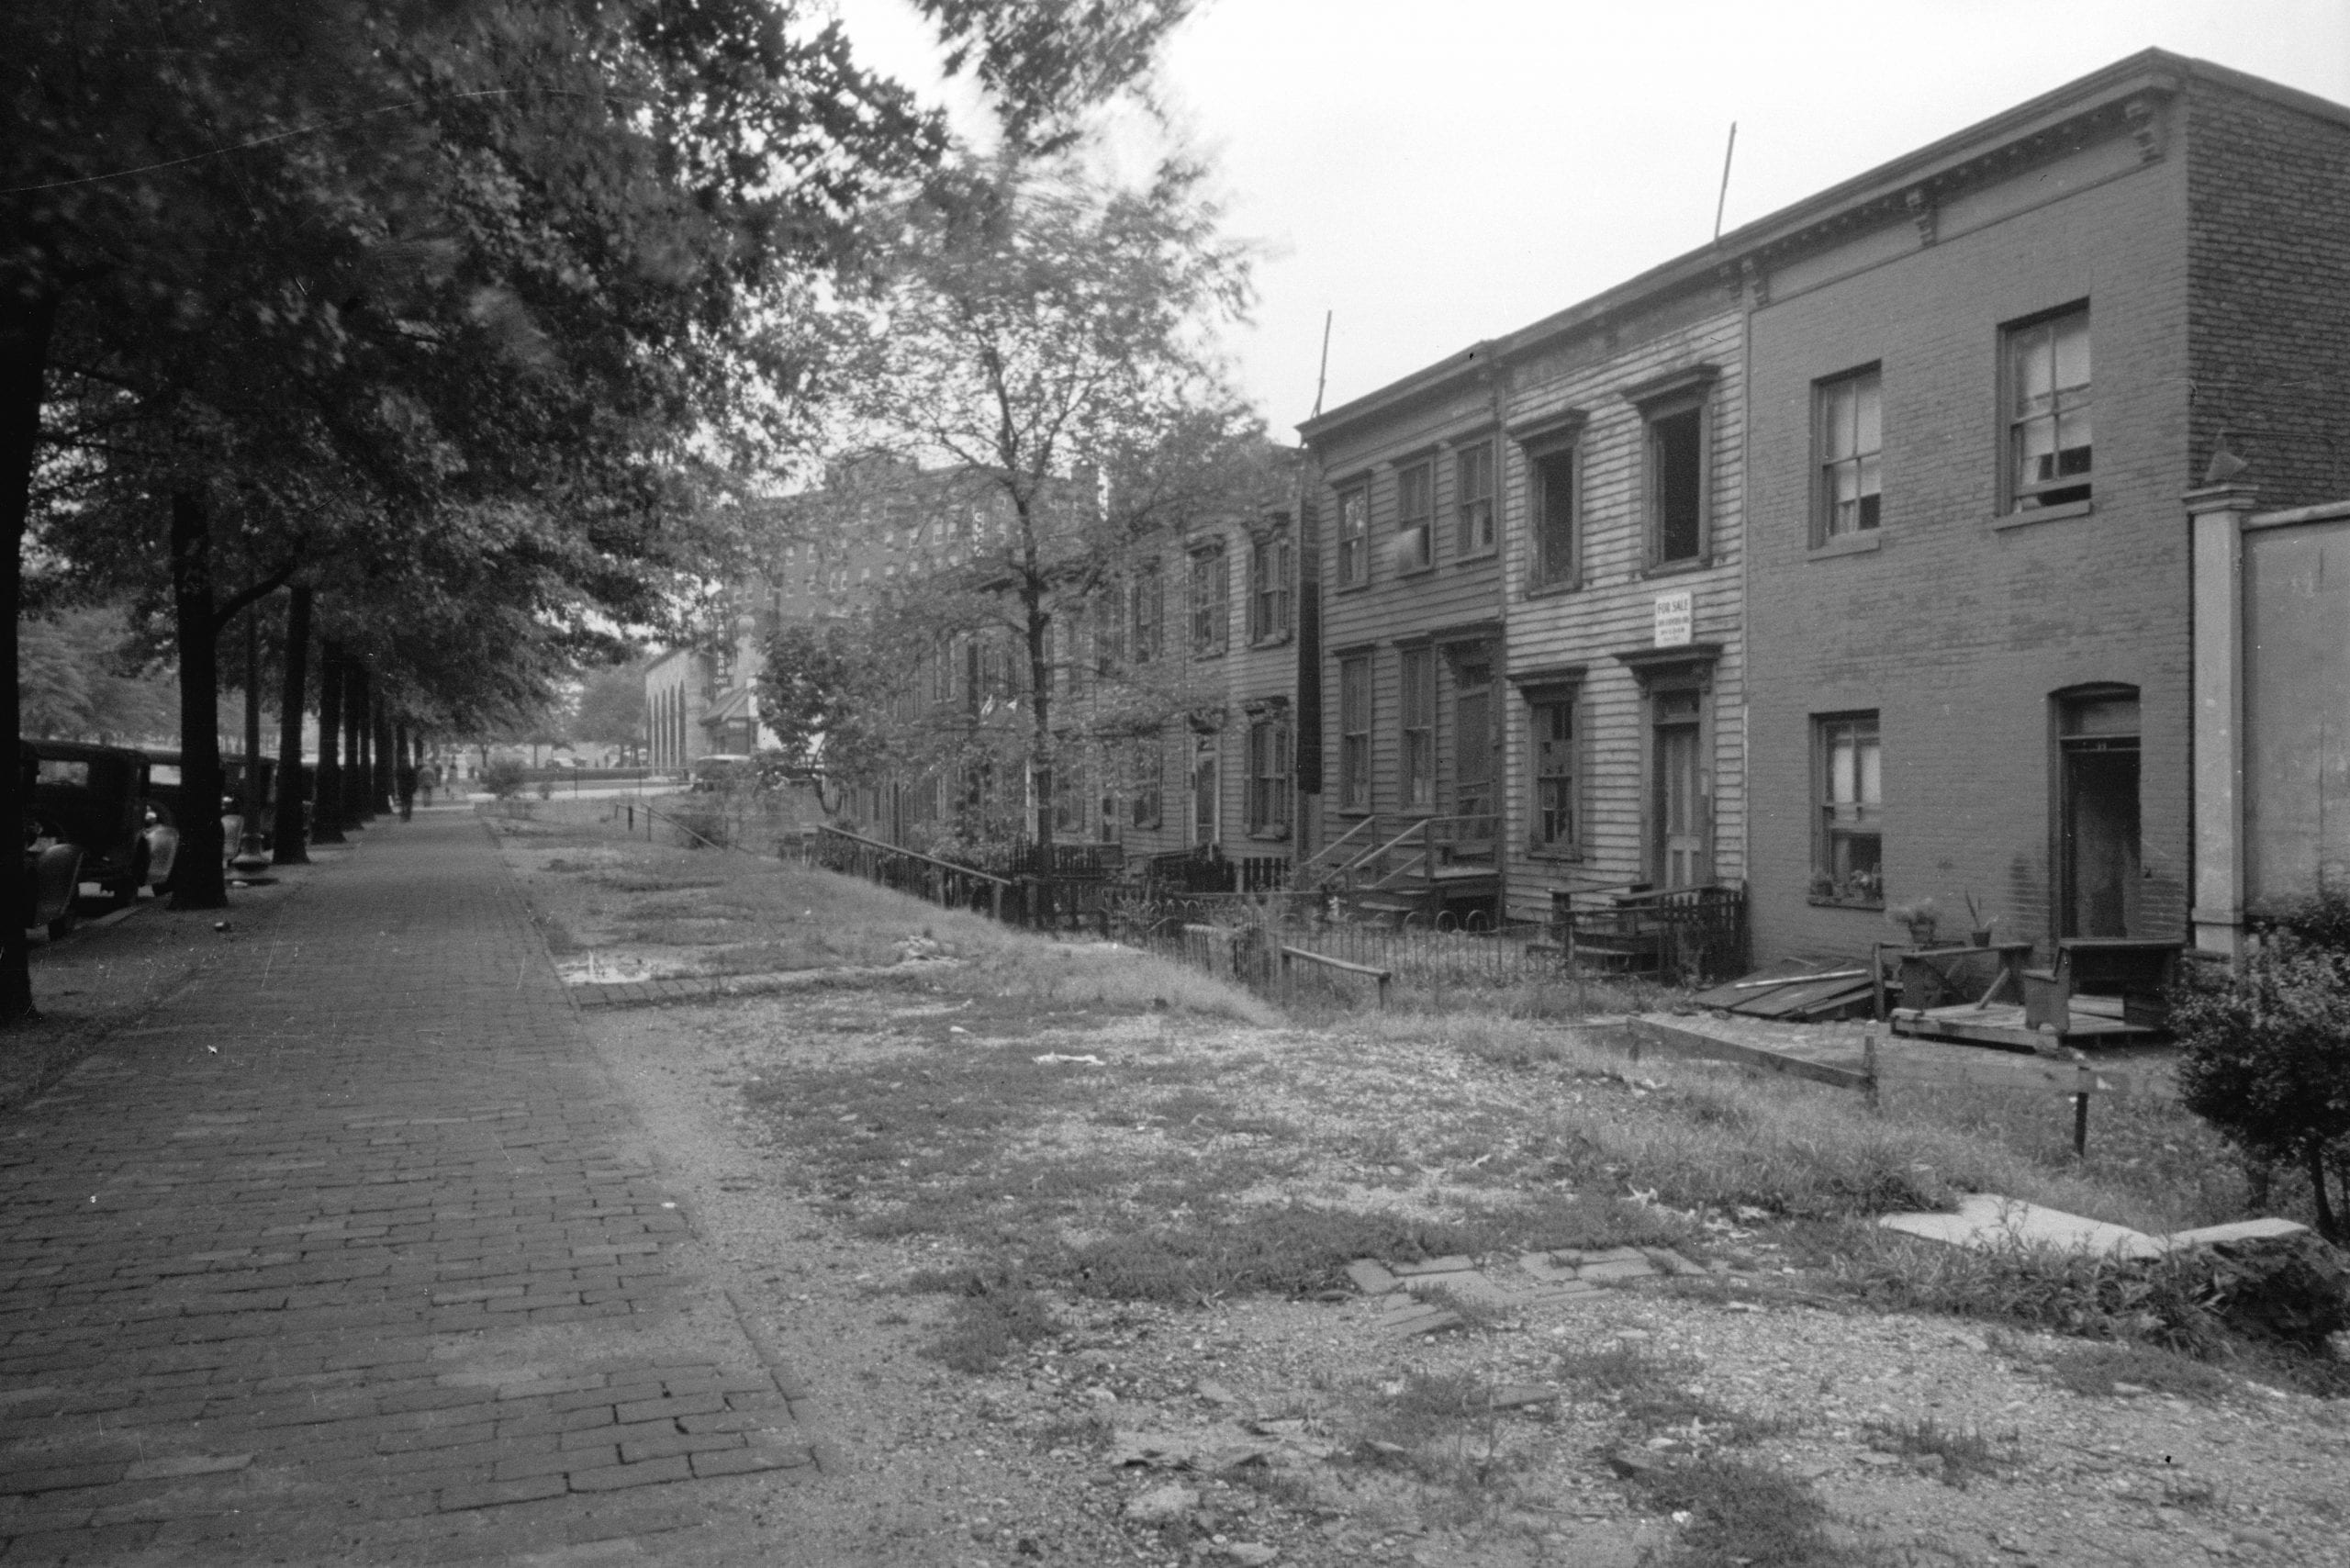 Section of Massachusetts Avenue showing block of shabby houses with outside toilets and water supply